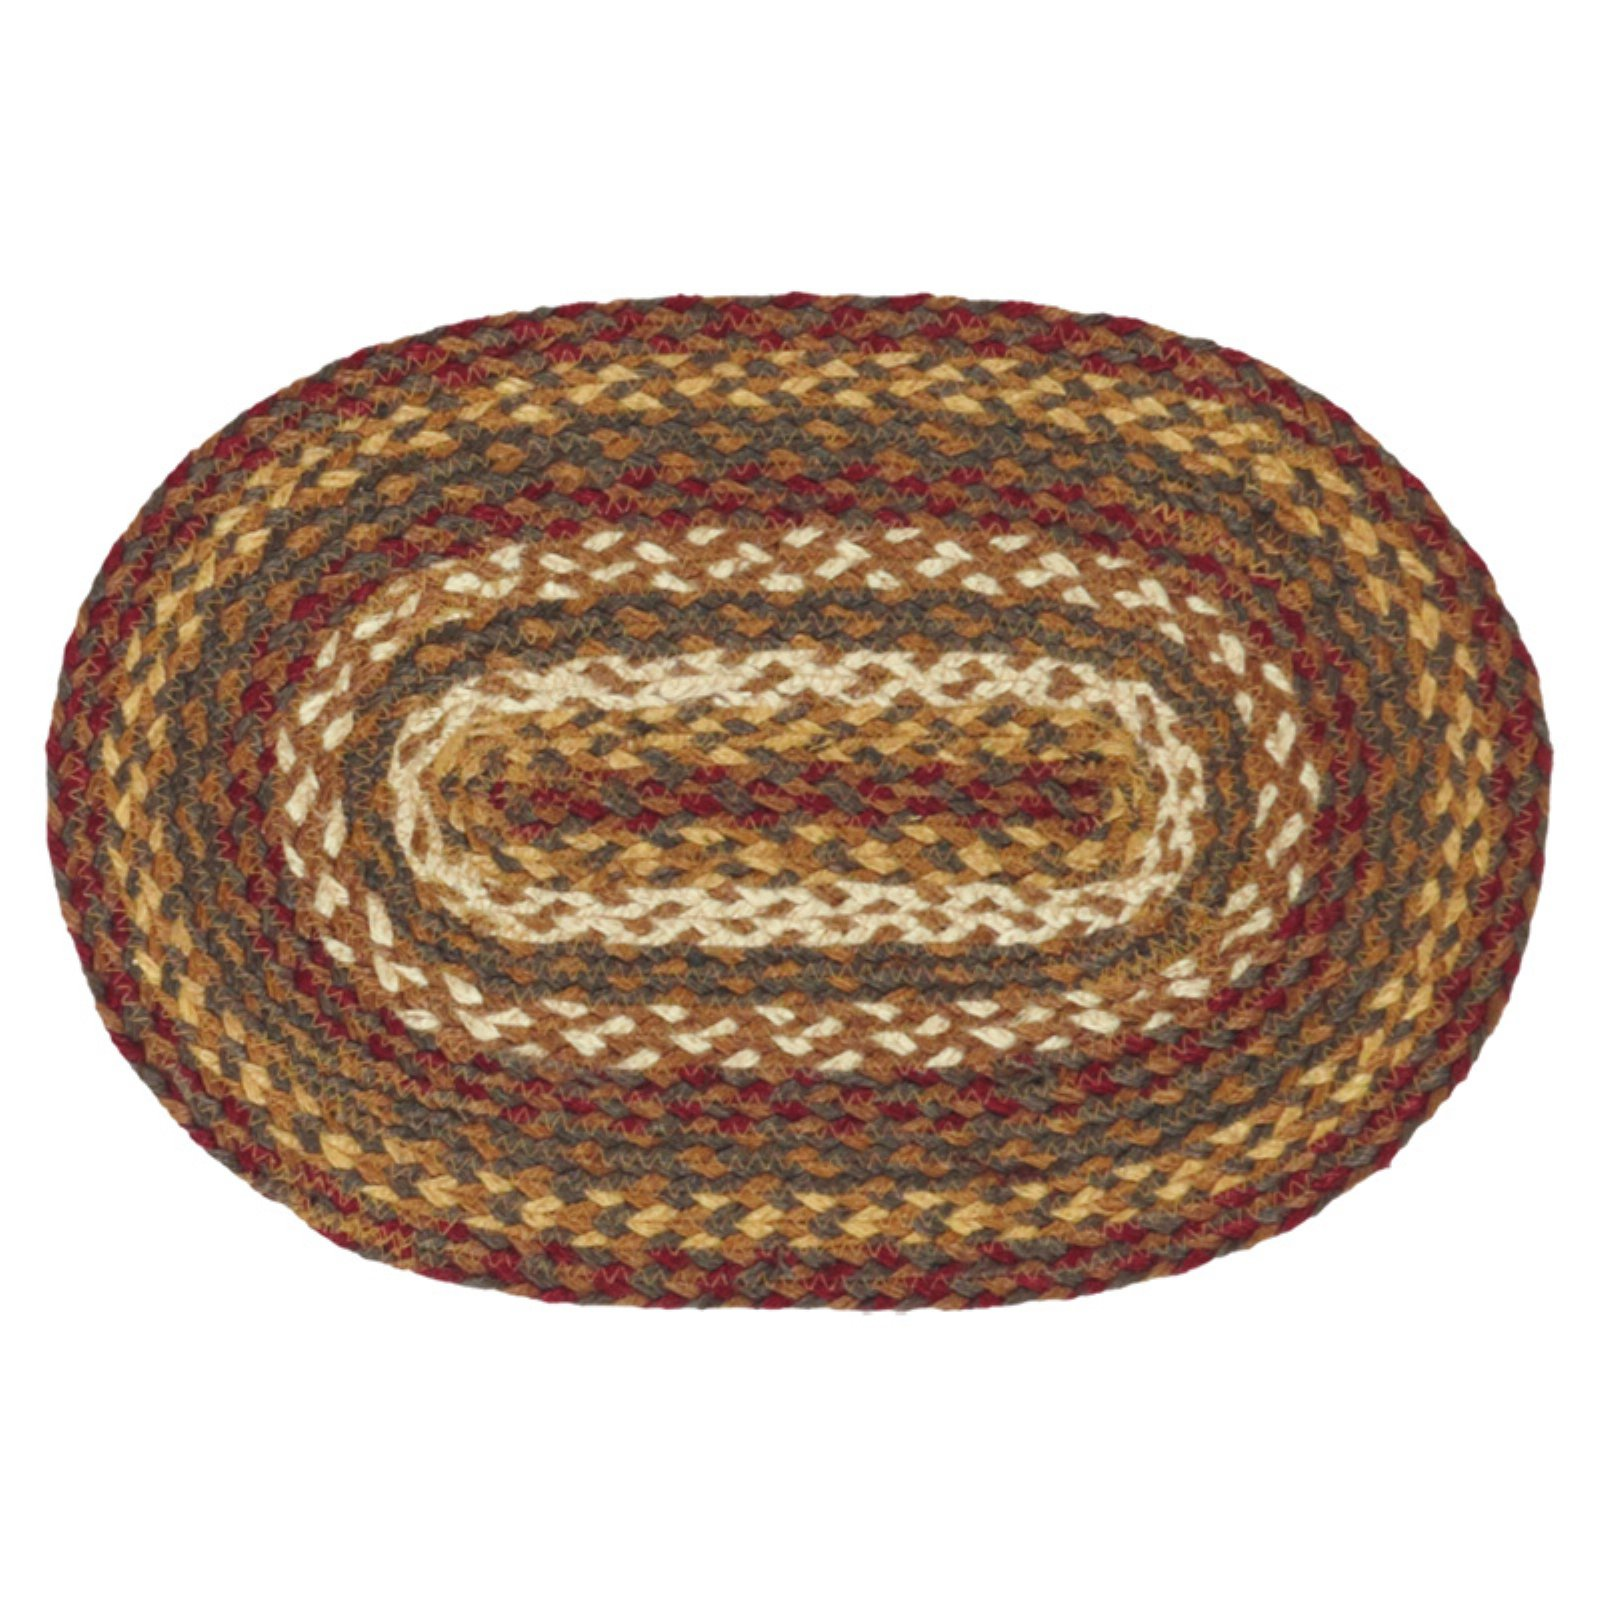 VHC Brands Tea Cabin Jute Placemat Set of 6 by VHC Brands